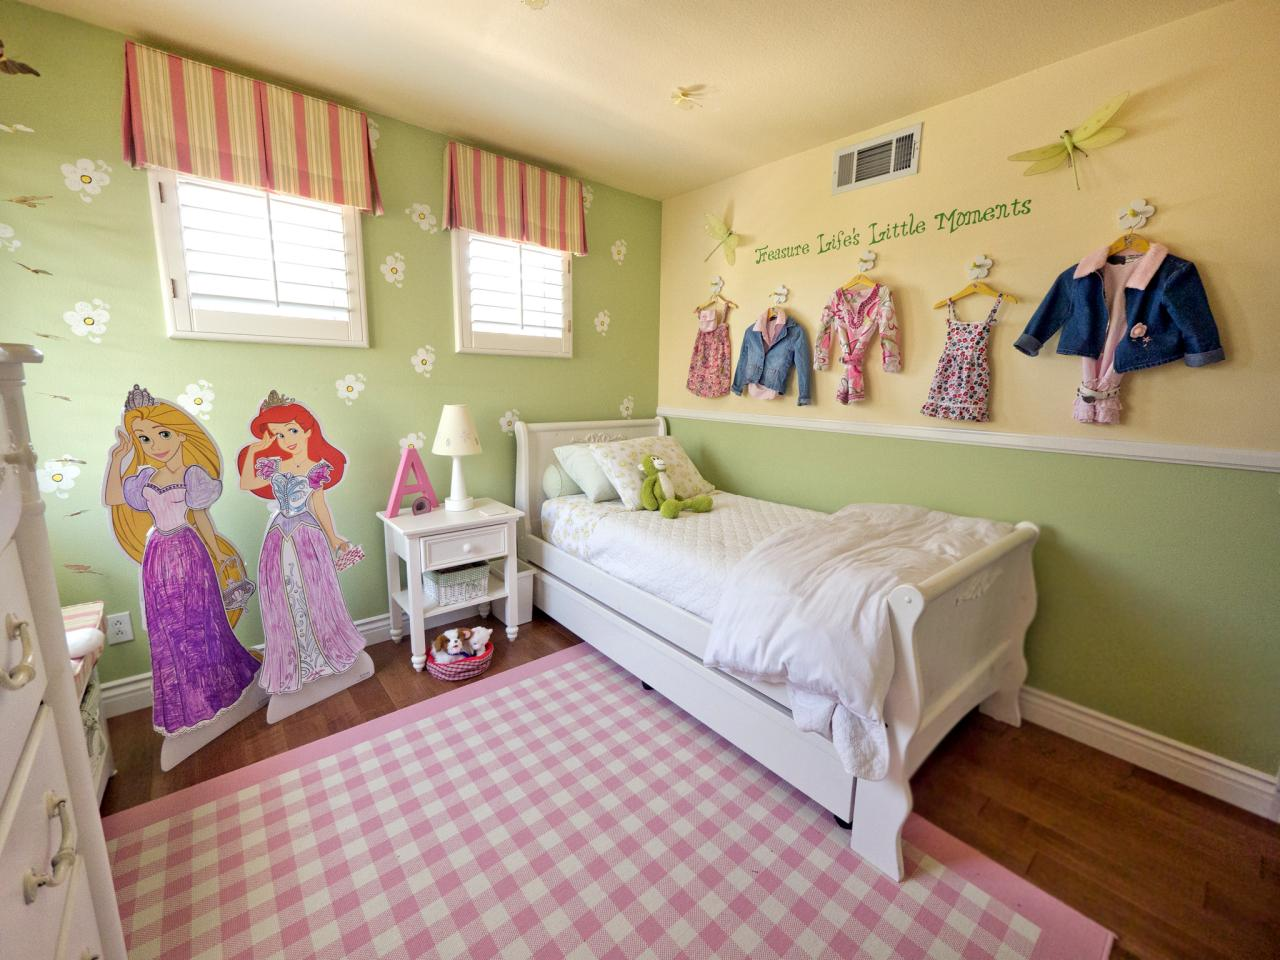 30 Colorful Girls Bedroom Design Ideas You Must Like on Girls Bedroom Ideas For Small Rooms  id=56675